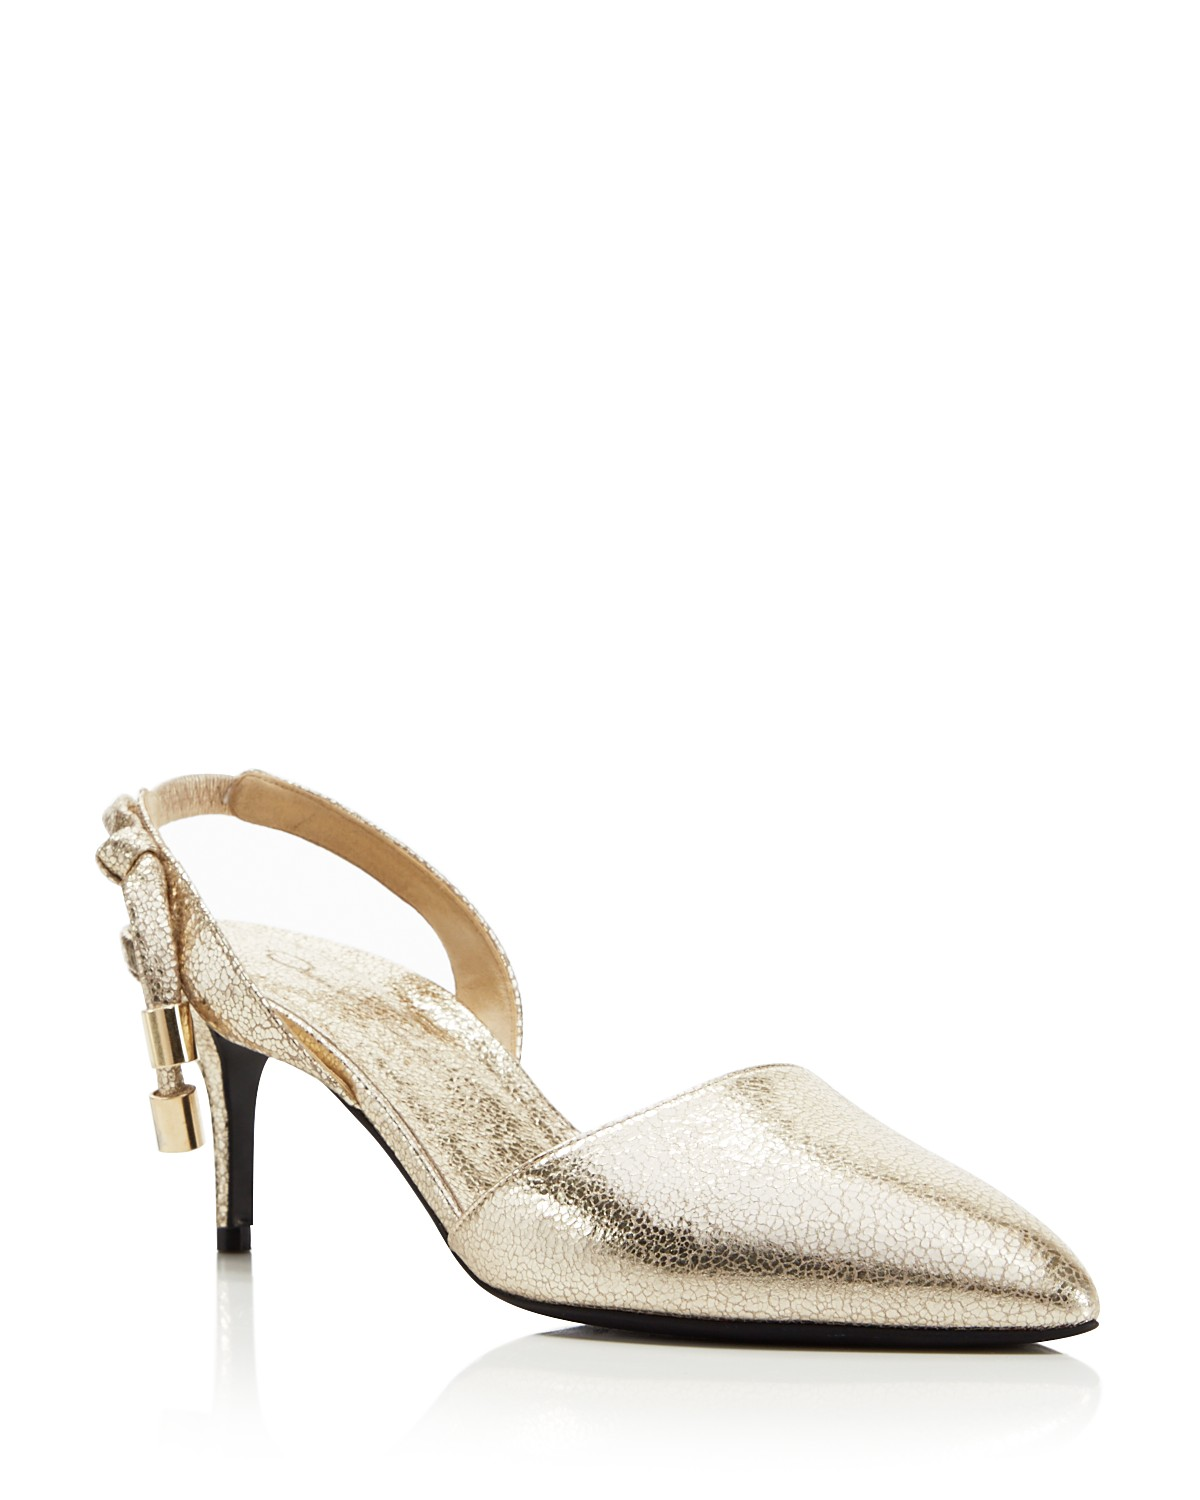 Oscar de la Renta Women's Cora Knot Metallic Leather Slingback Pumps S4JkEZ